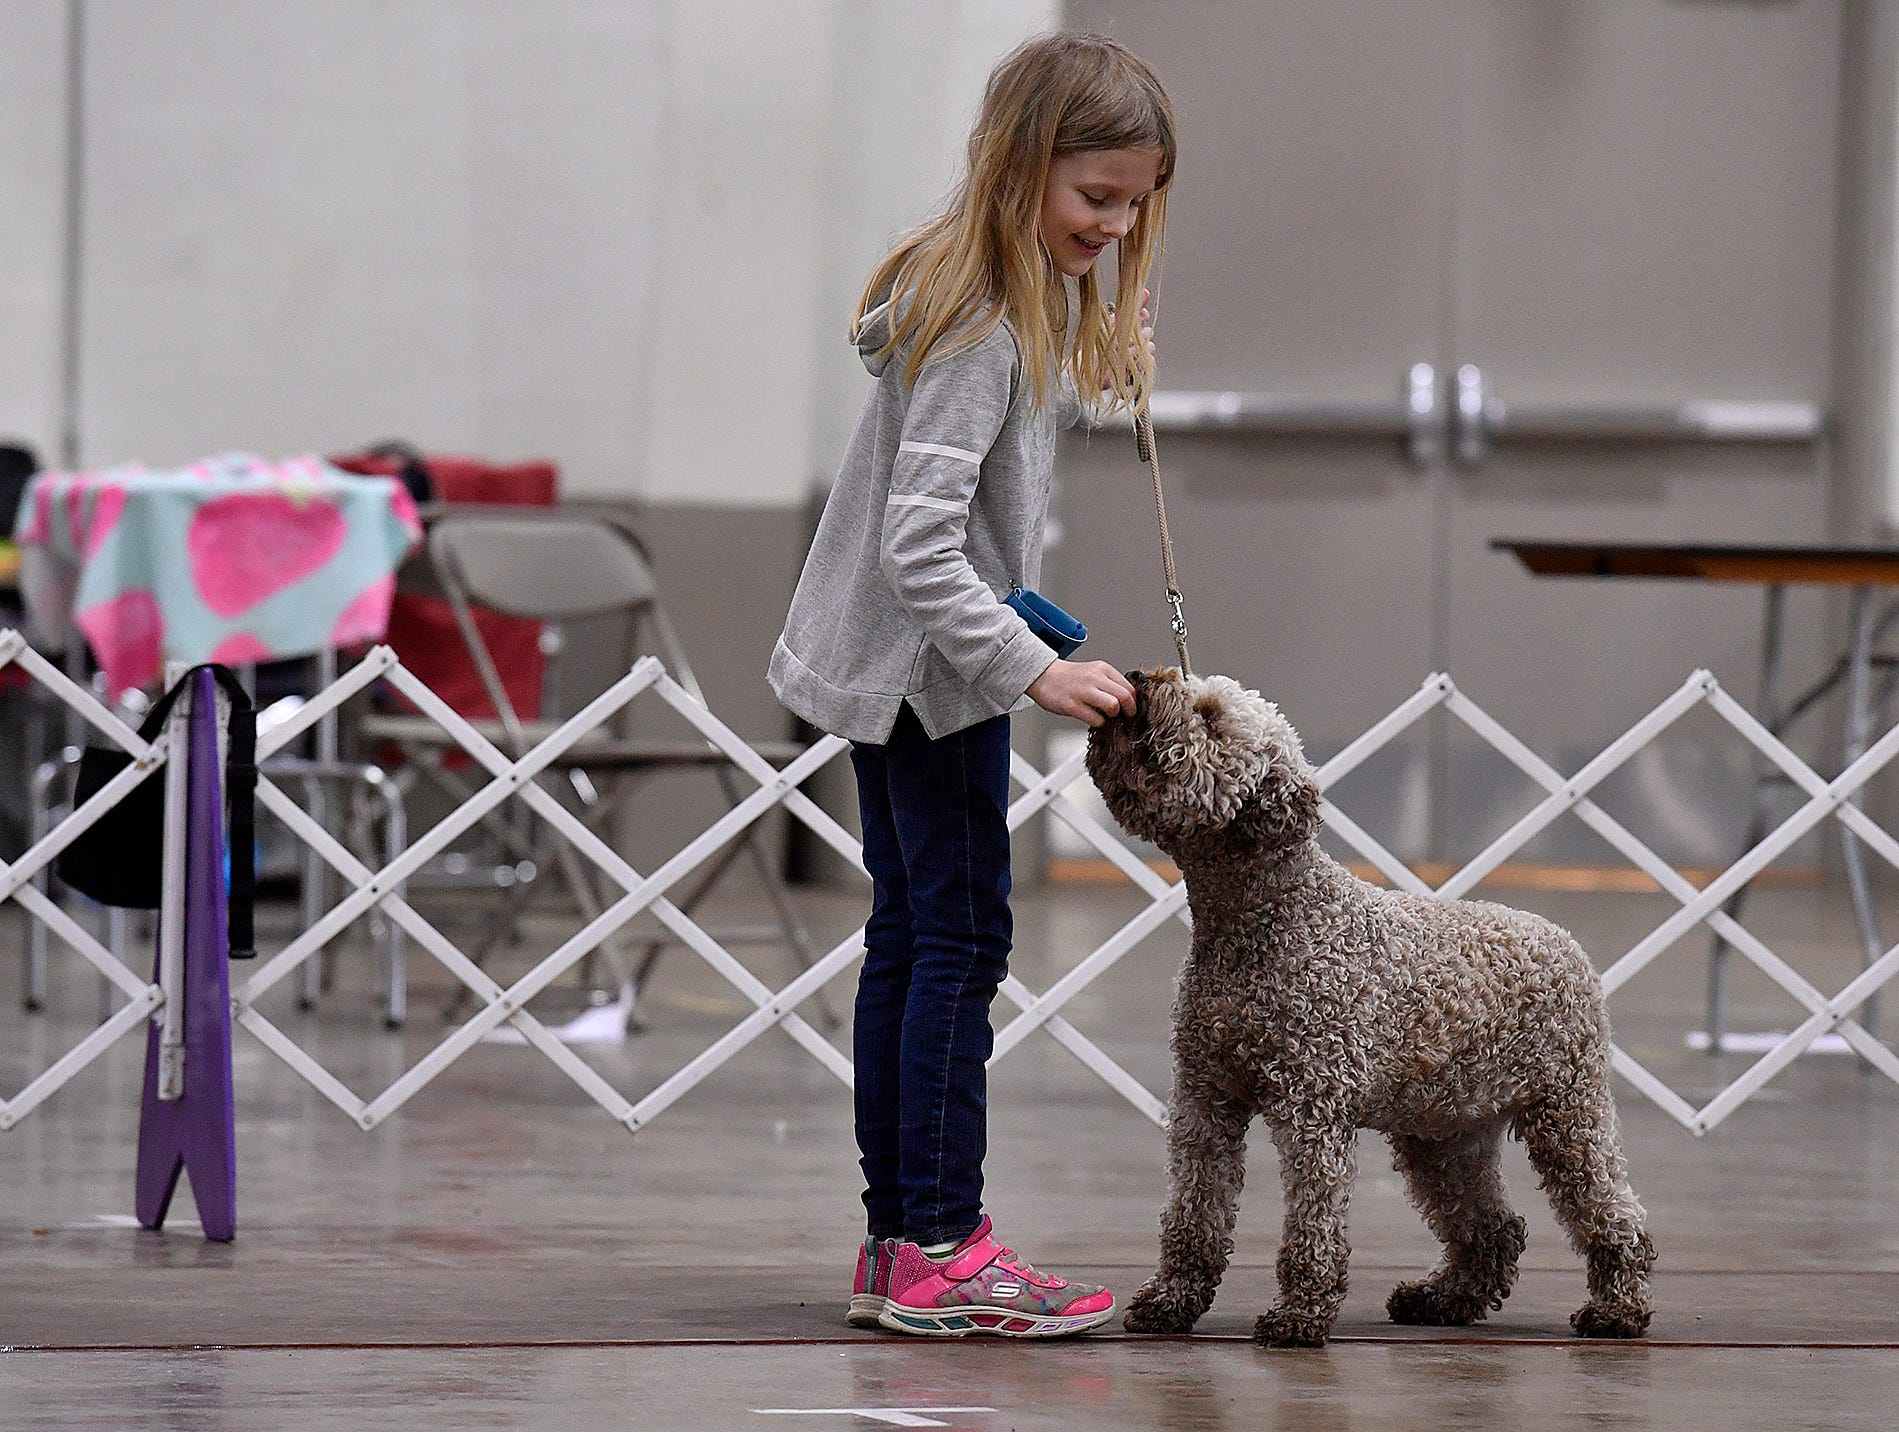 Isabella Stephenson, 8, works with her Lagotto Romagnolo puppy Cinnamon between judging at the annual Celtic Classic Dog Show, Wednesday, March 13, 2018.